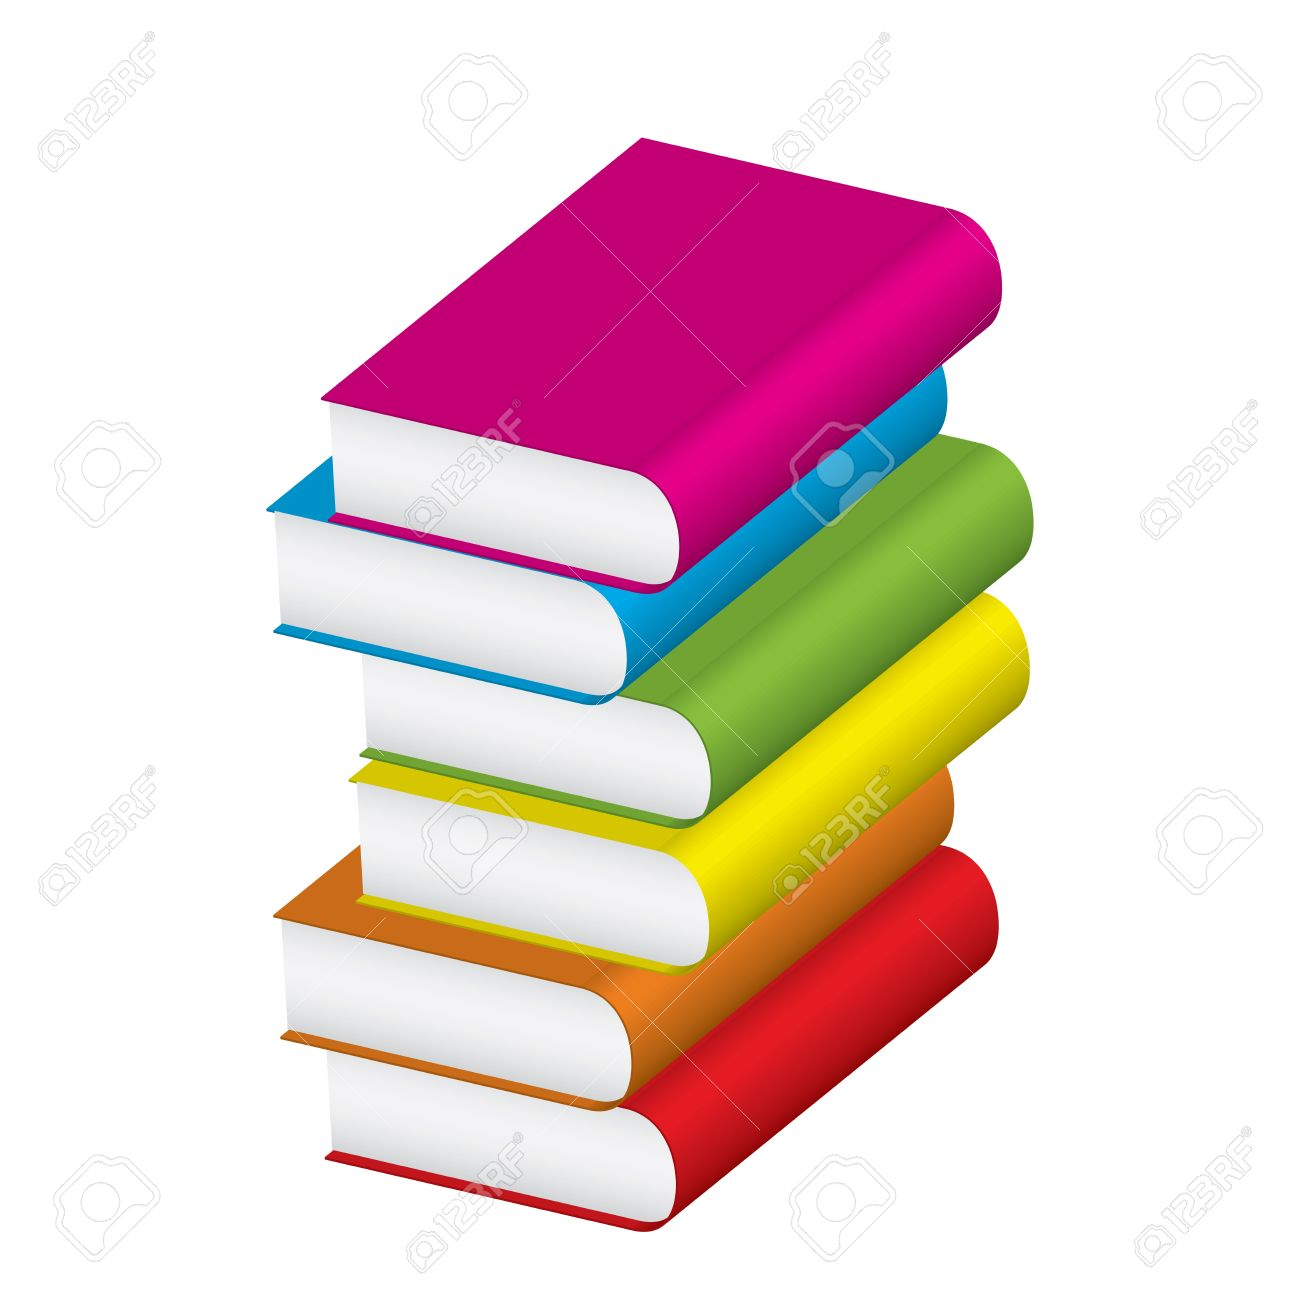 Vector Illustration Of Stack Of Colorful Books Royalty Free Cliparts ...